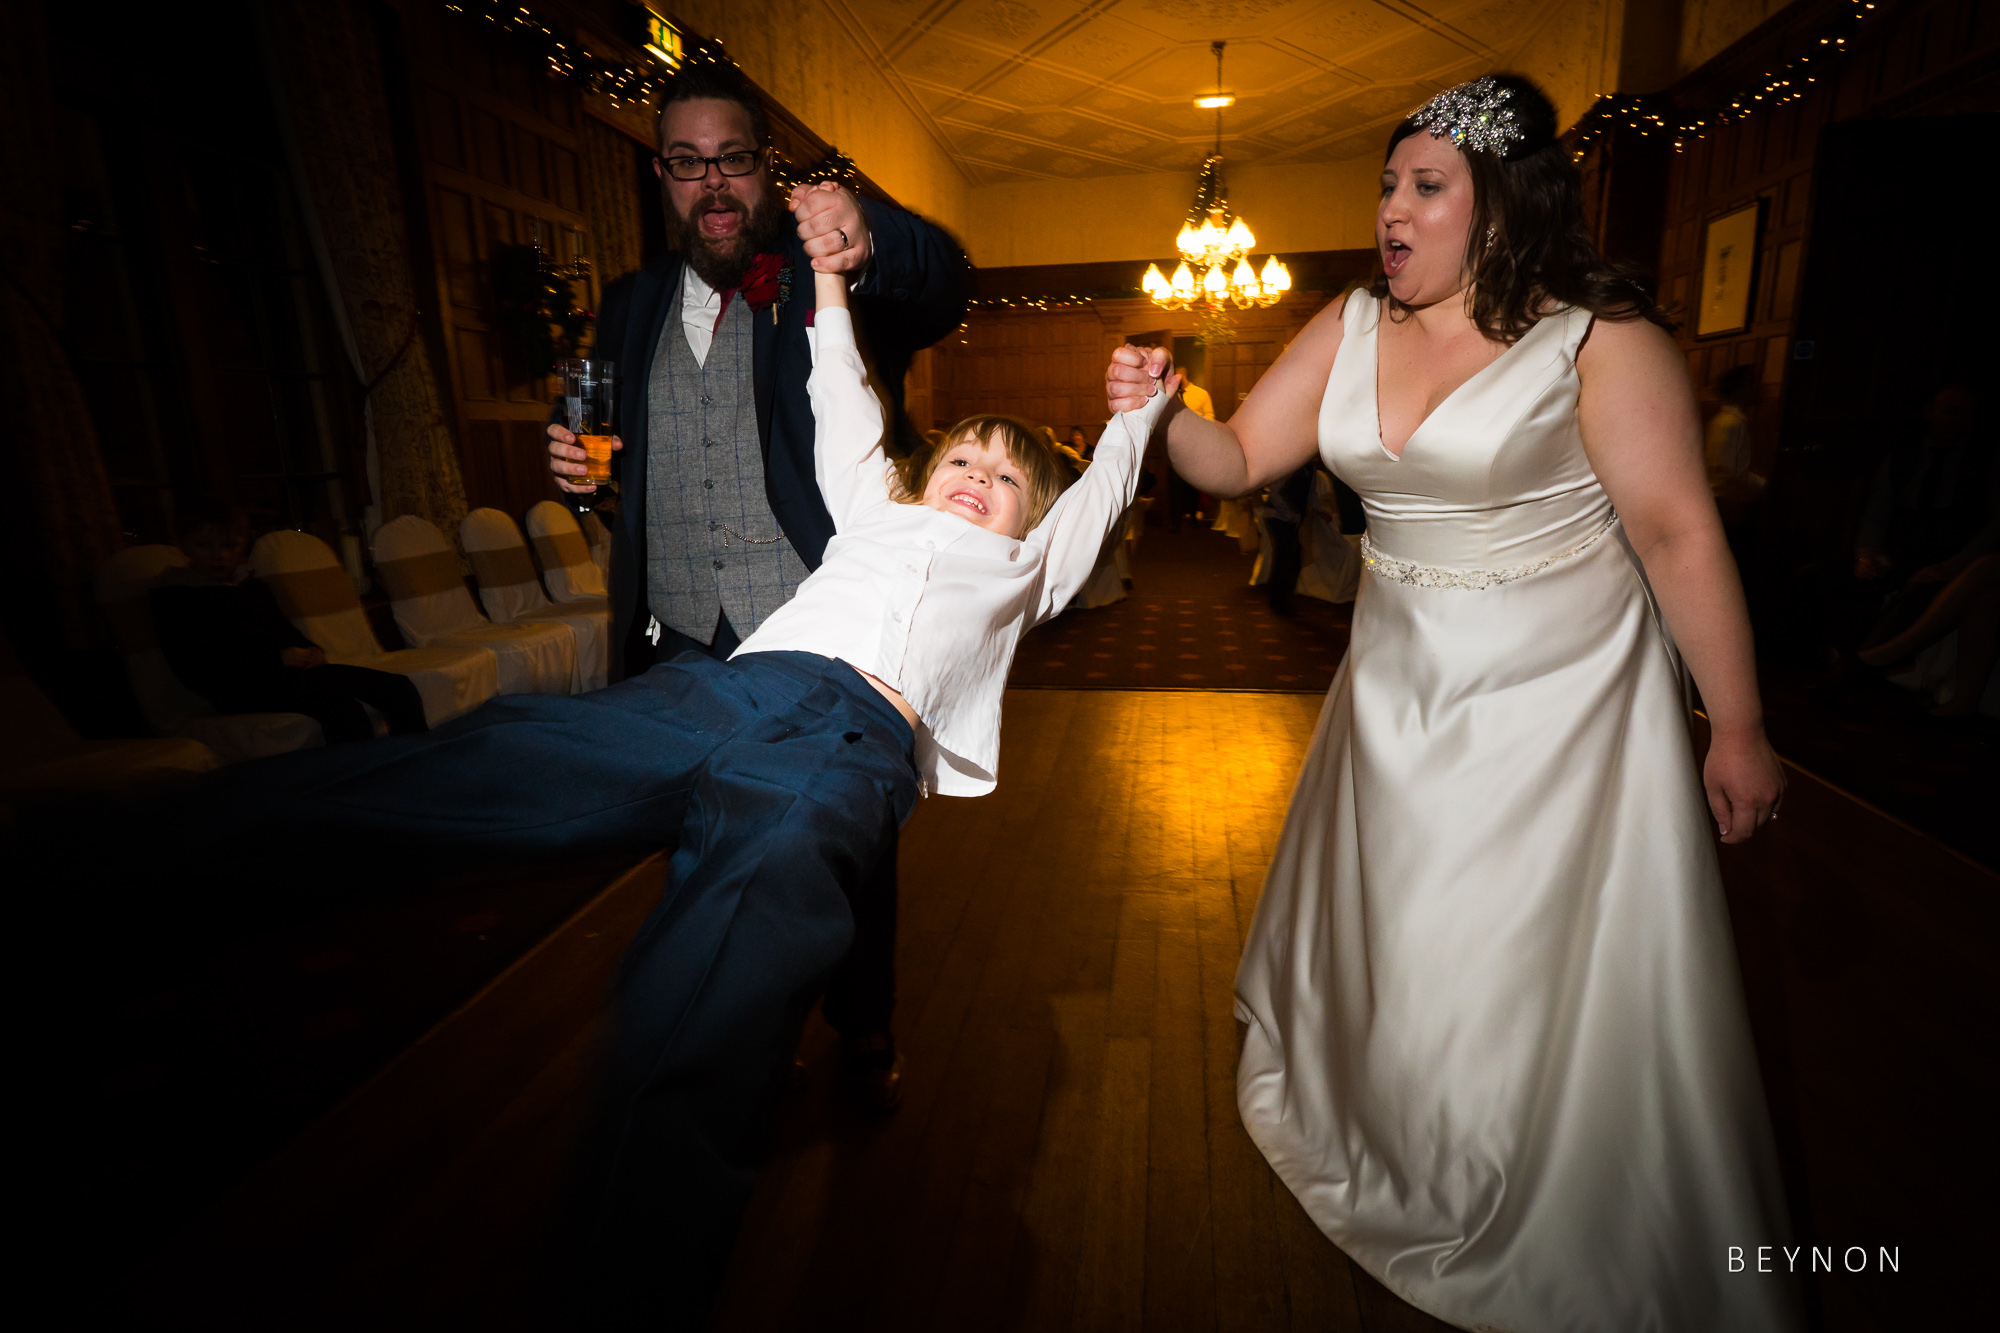 The Bride and groom dance with a small child